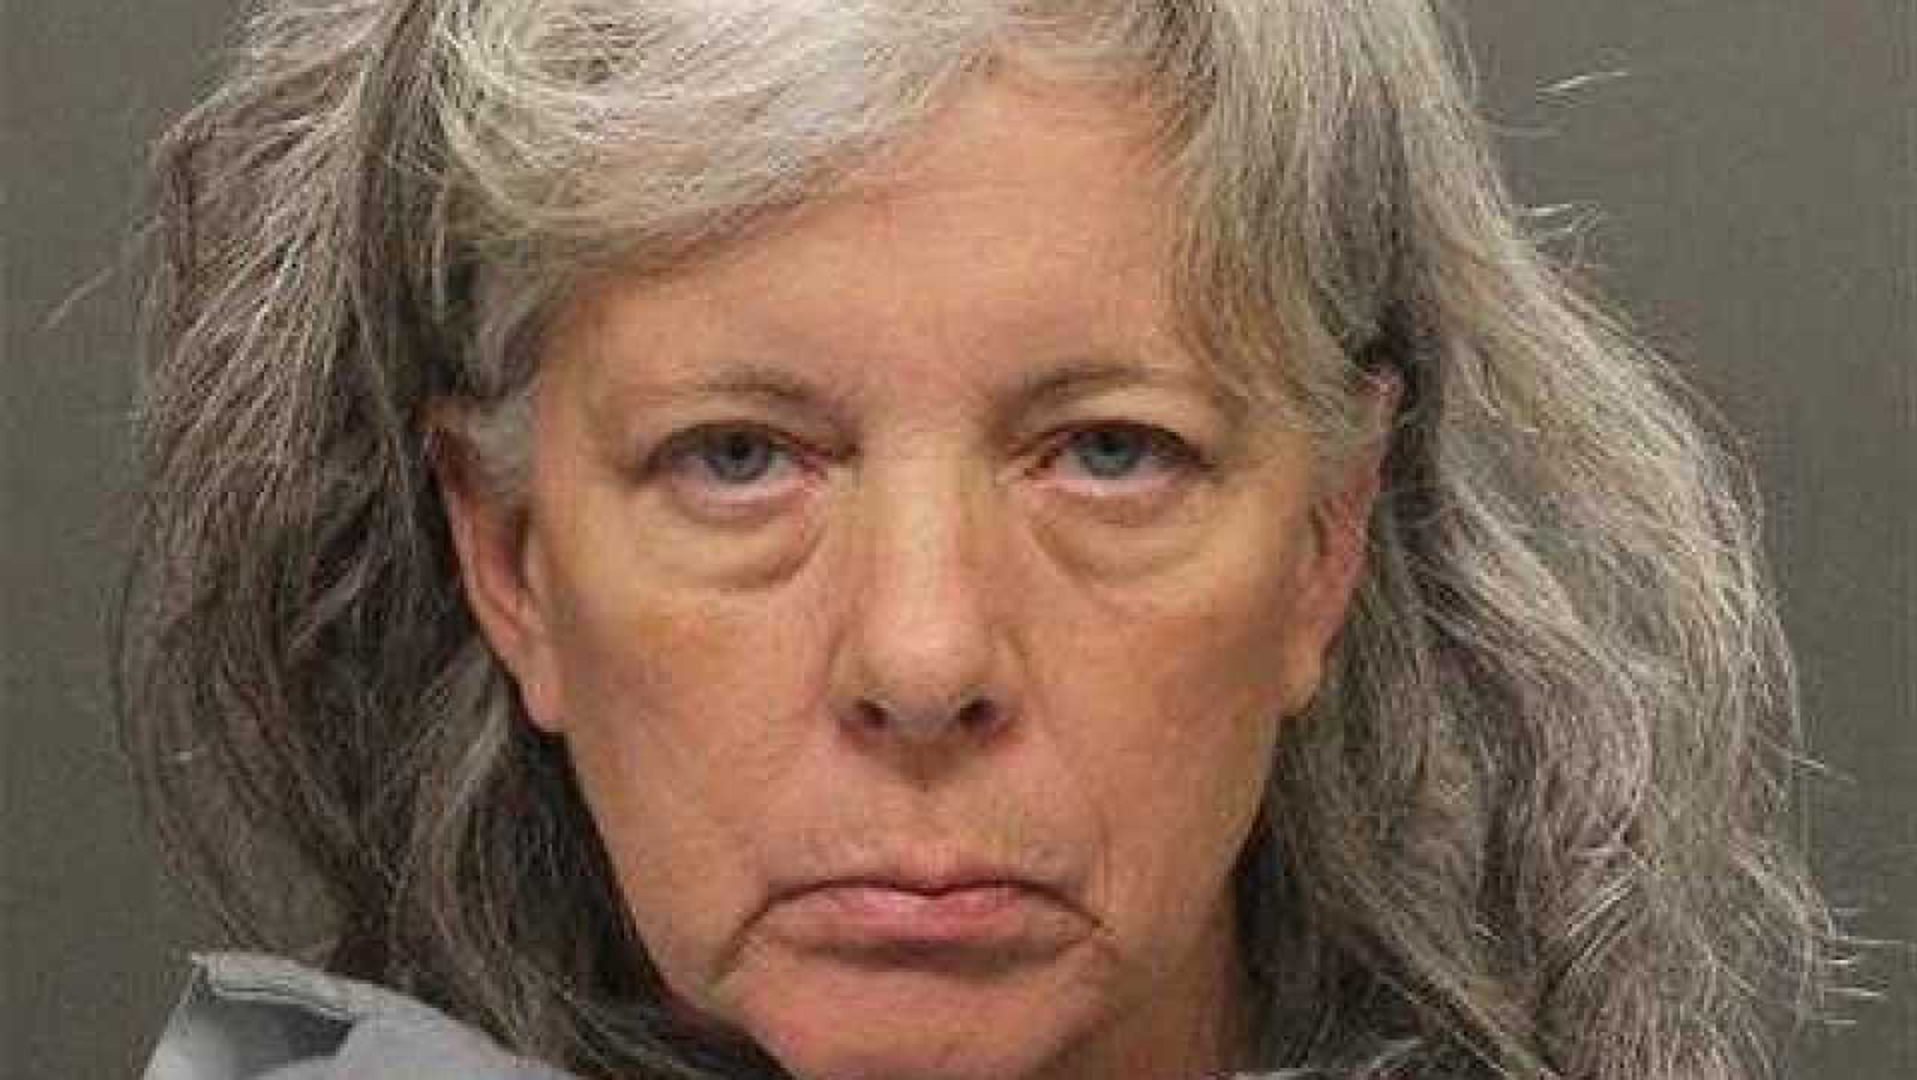 The Pima County Sheriff's Department released this photo of Dorothy Flood.